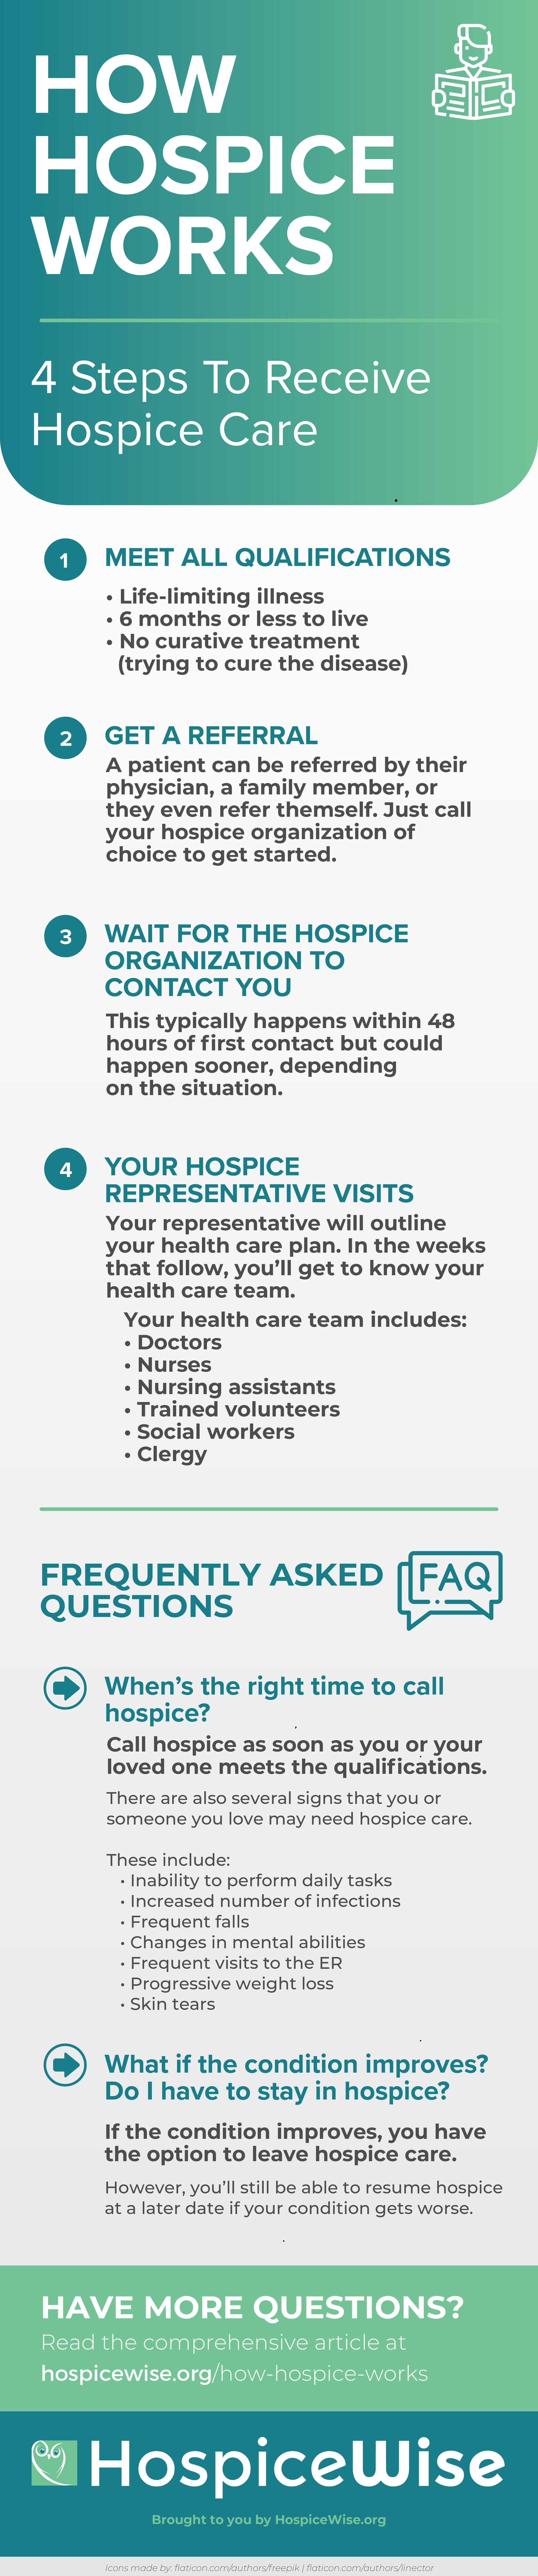 how hospice works